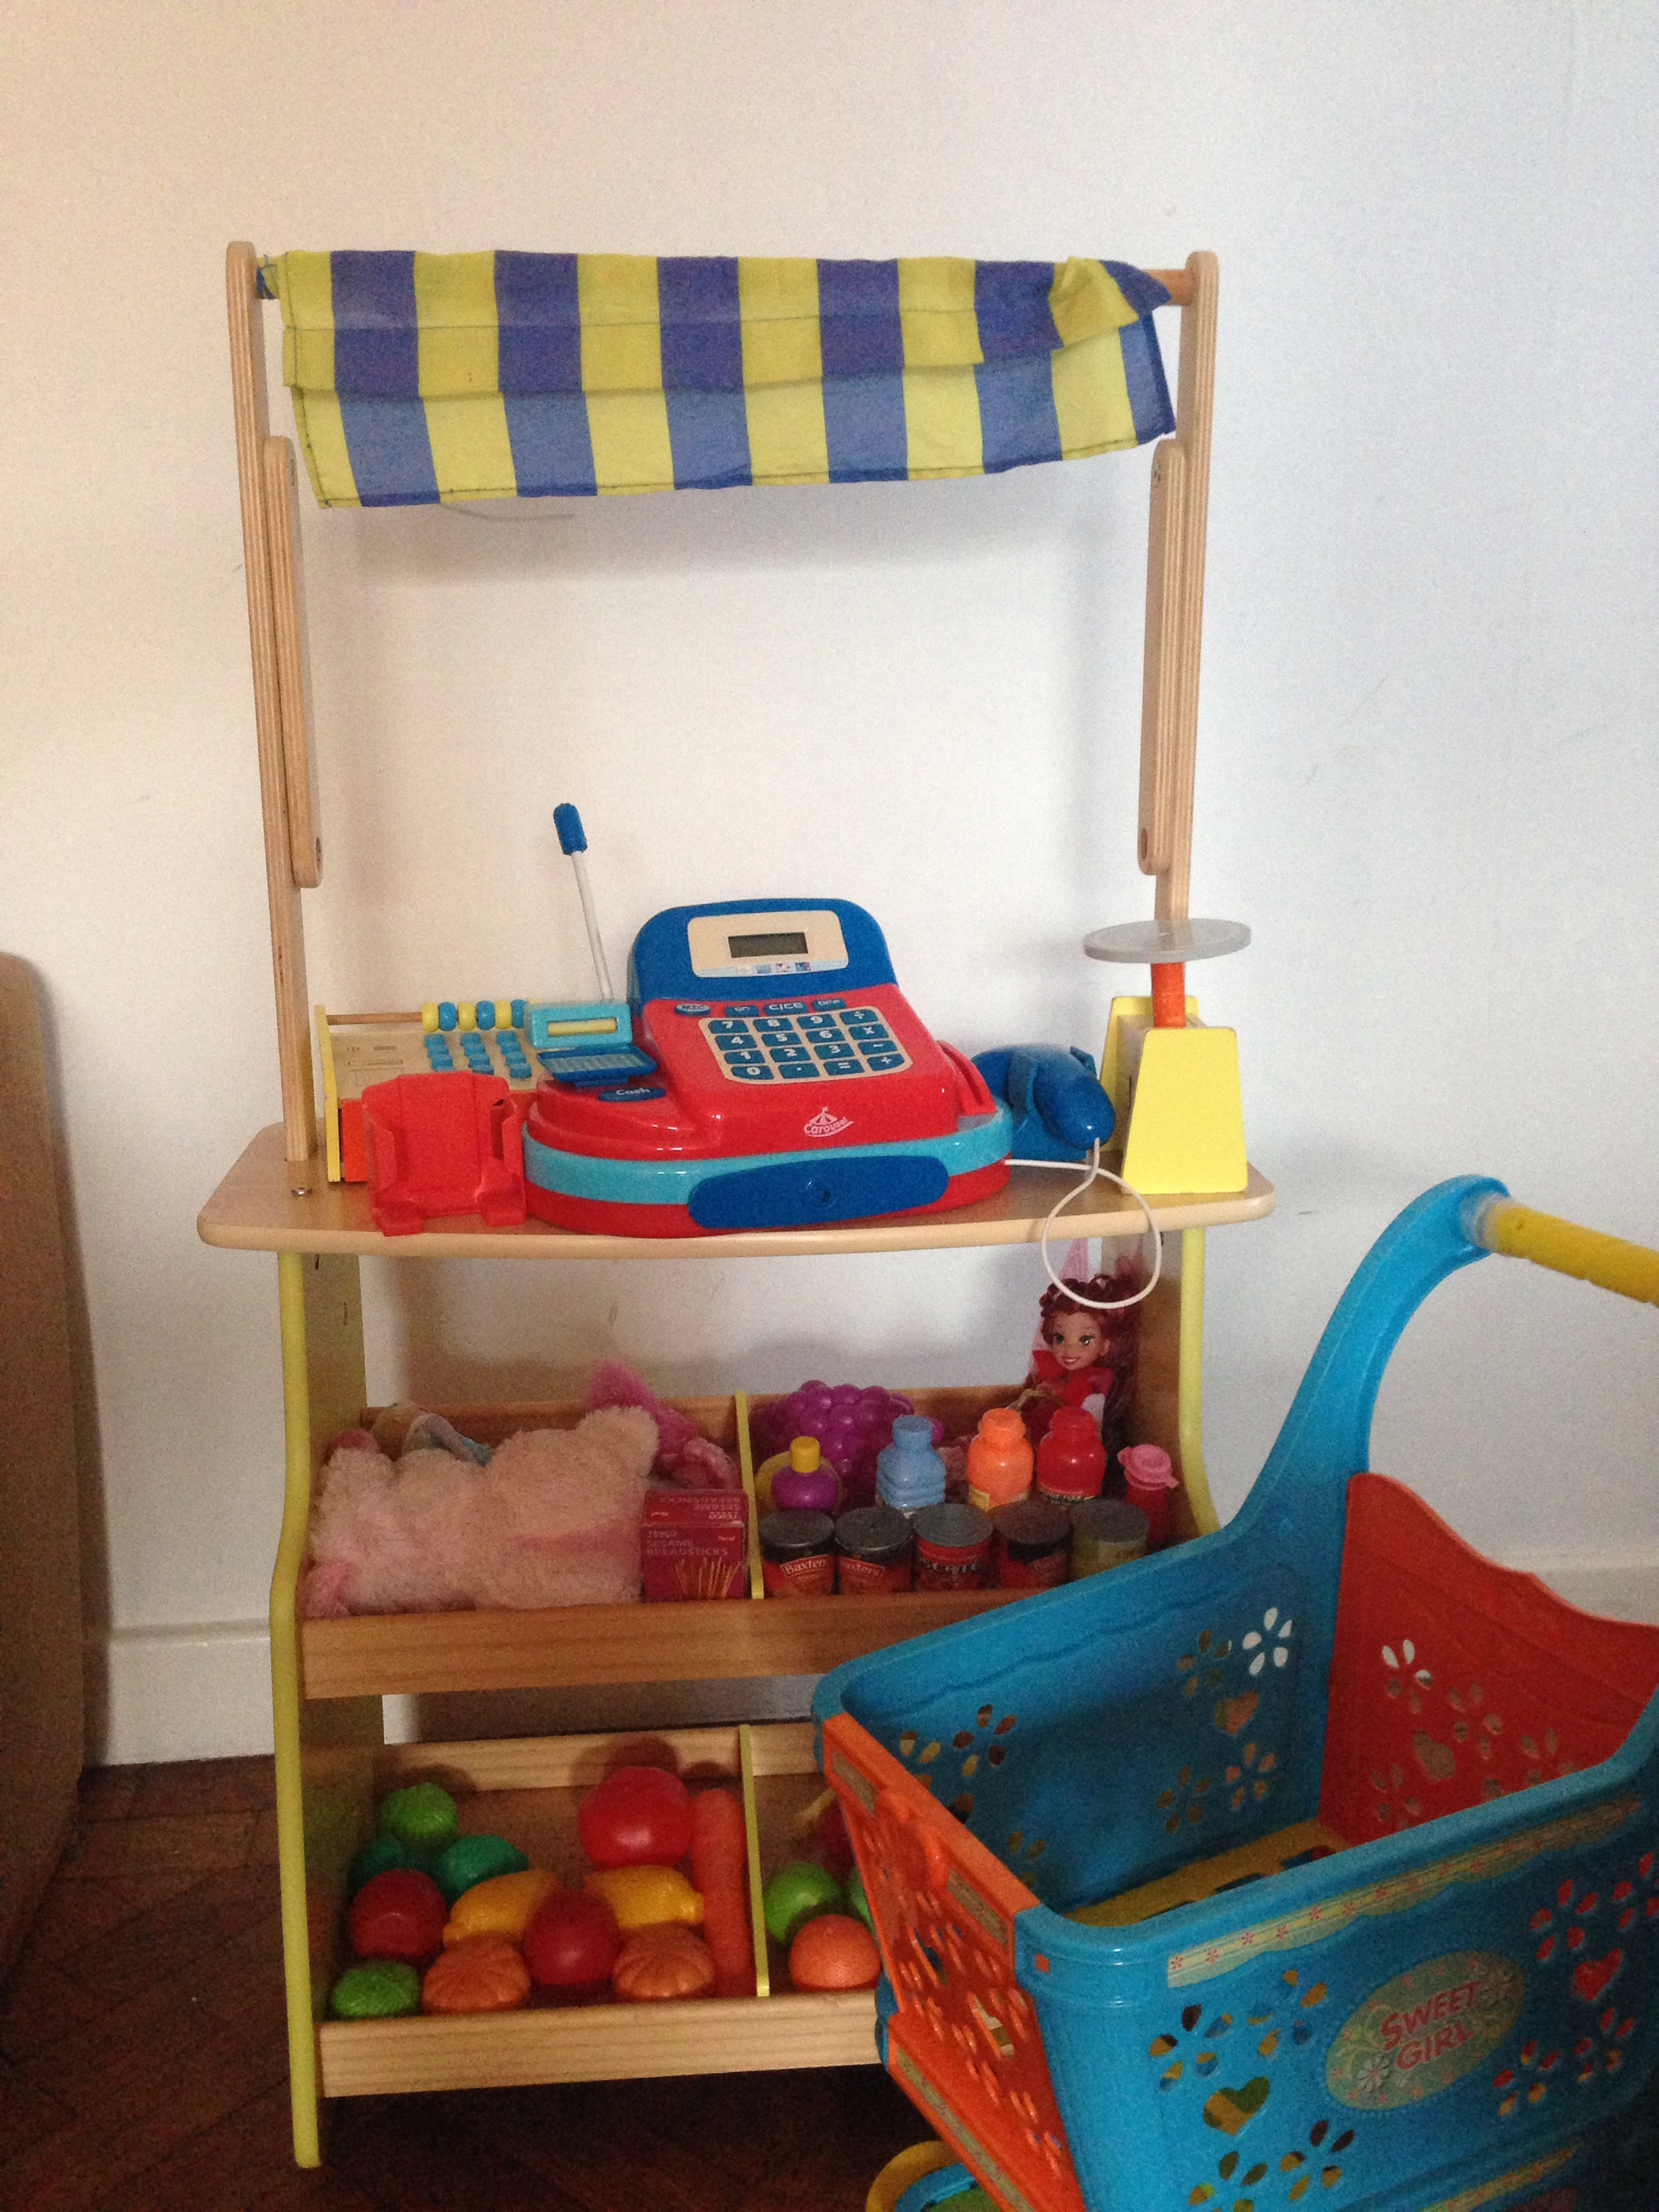 The Toddler Shop